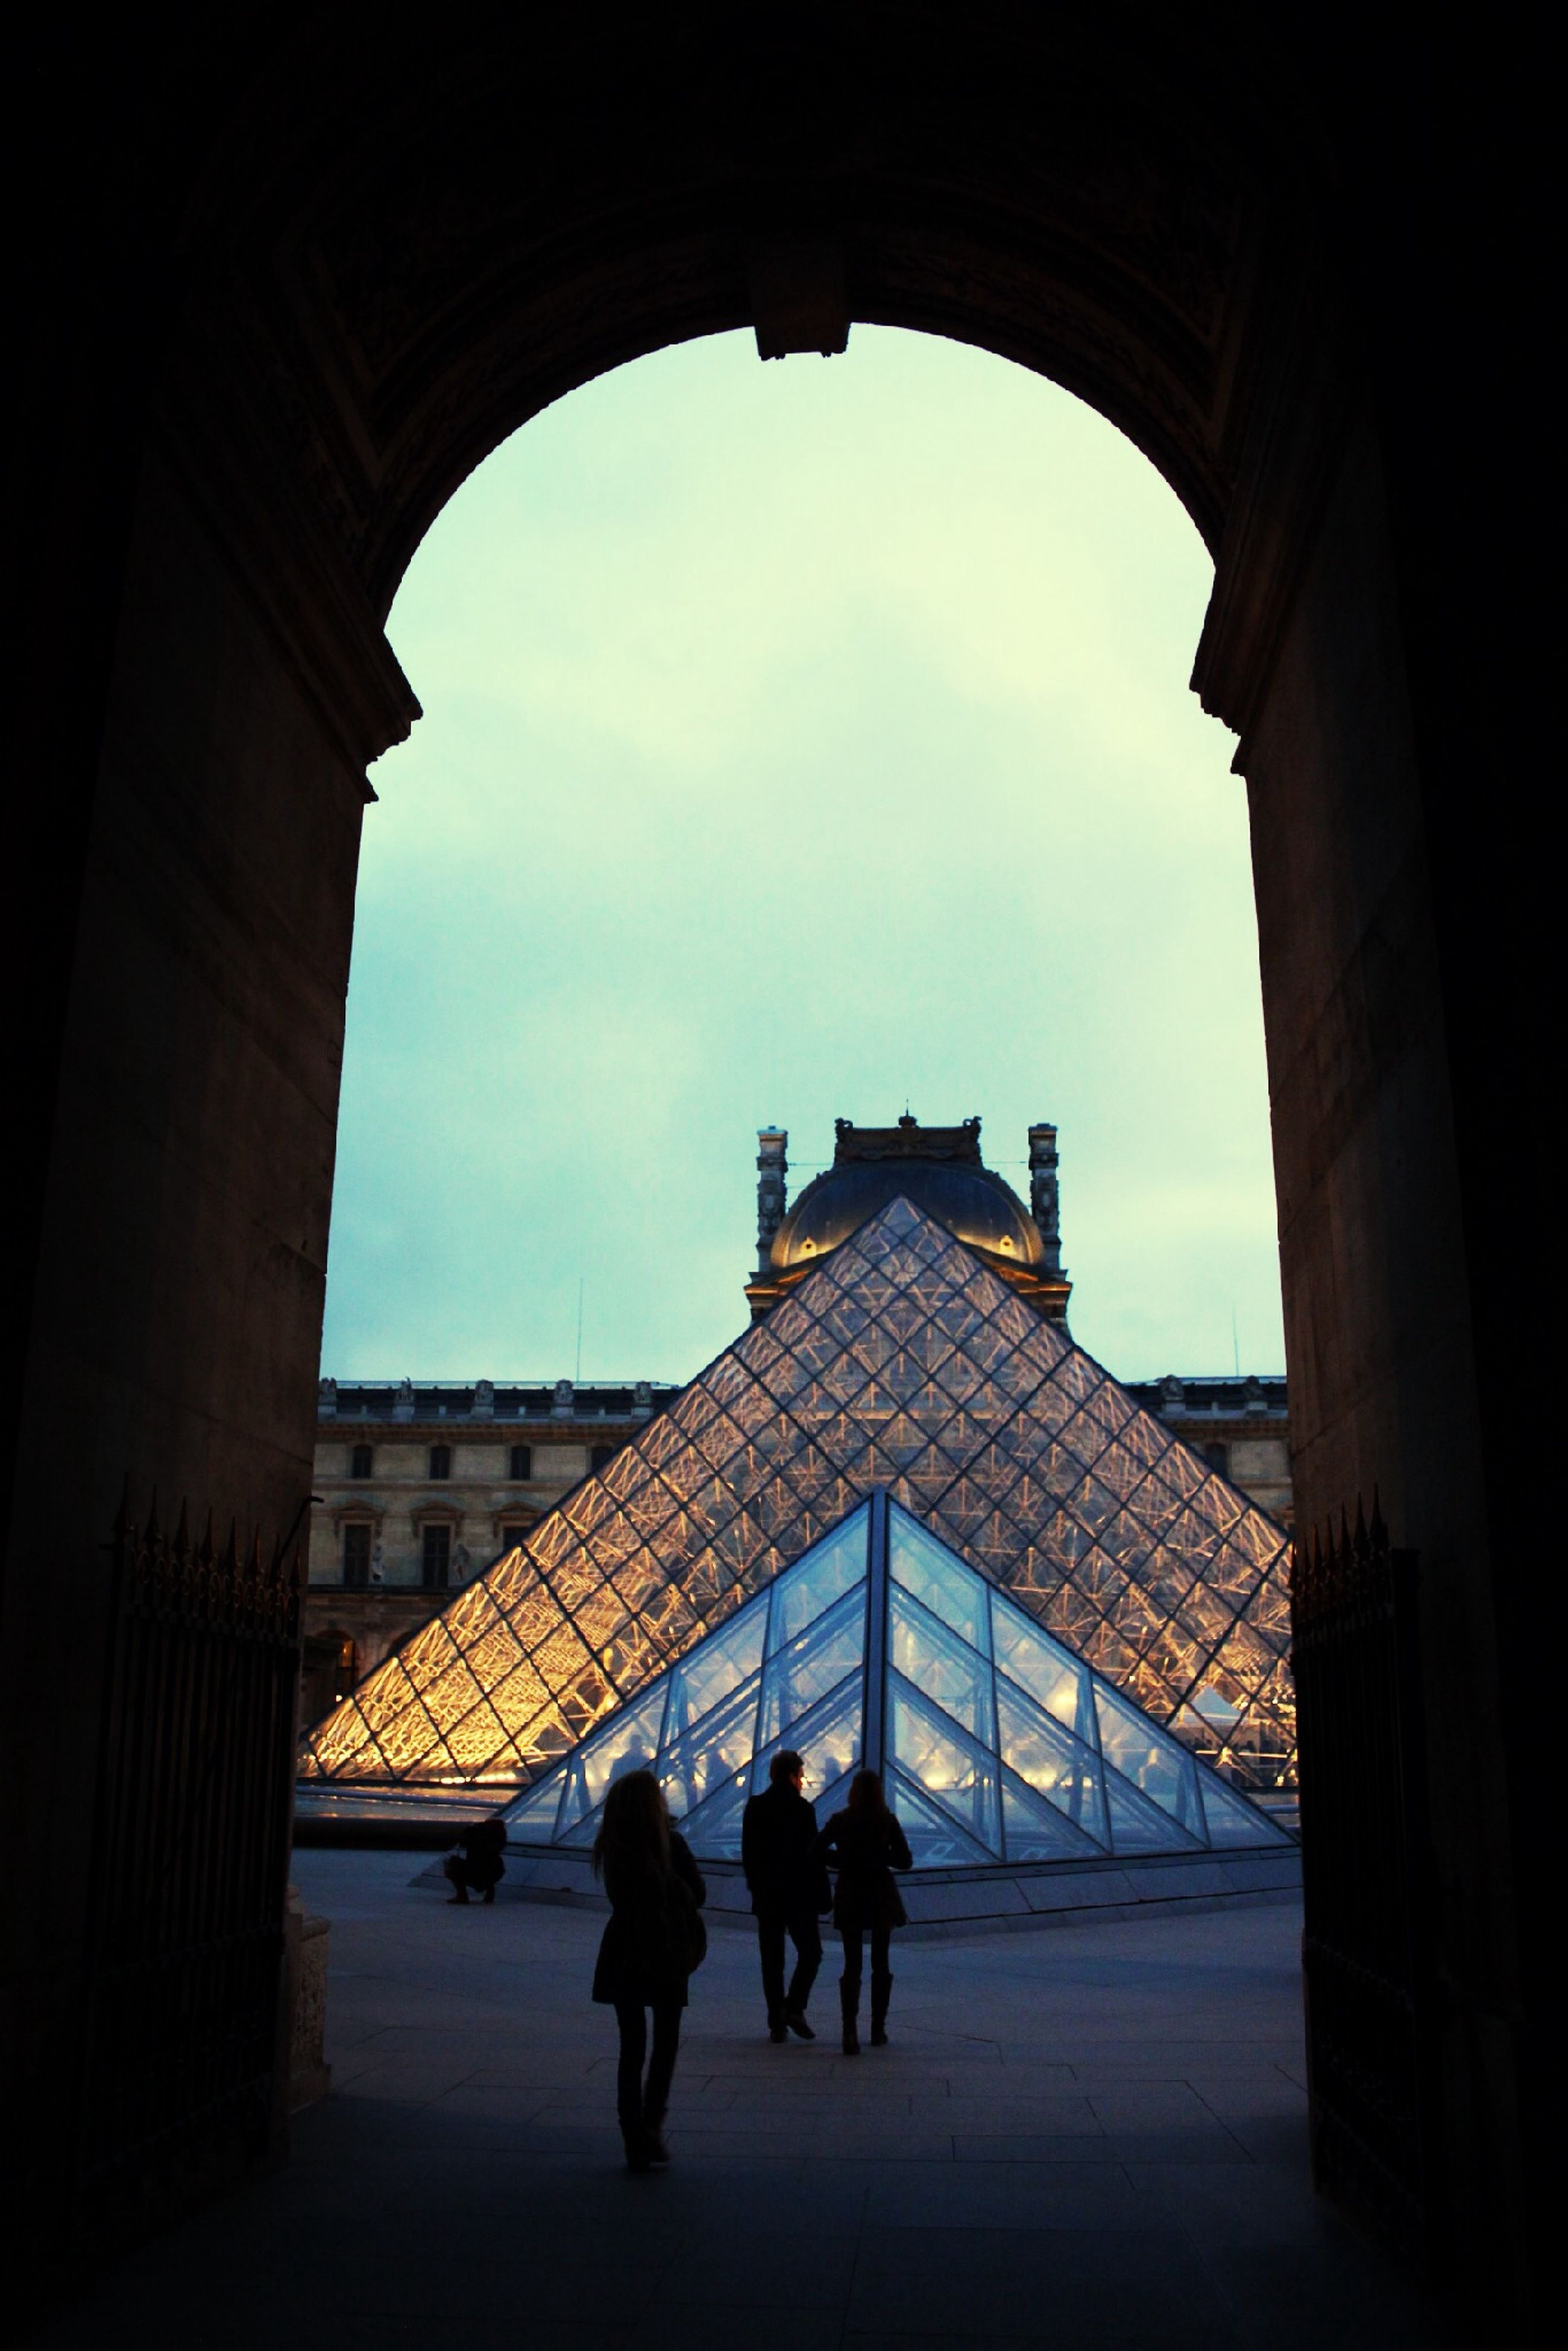 architecture, built structure, arch, sky, building exterior, men, person, lifestyles, walking, silhouette, indoors, full length, history, leisure activity, standing, cloud - sky, tourist, famous place